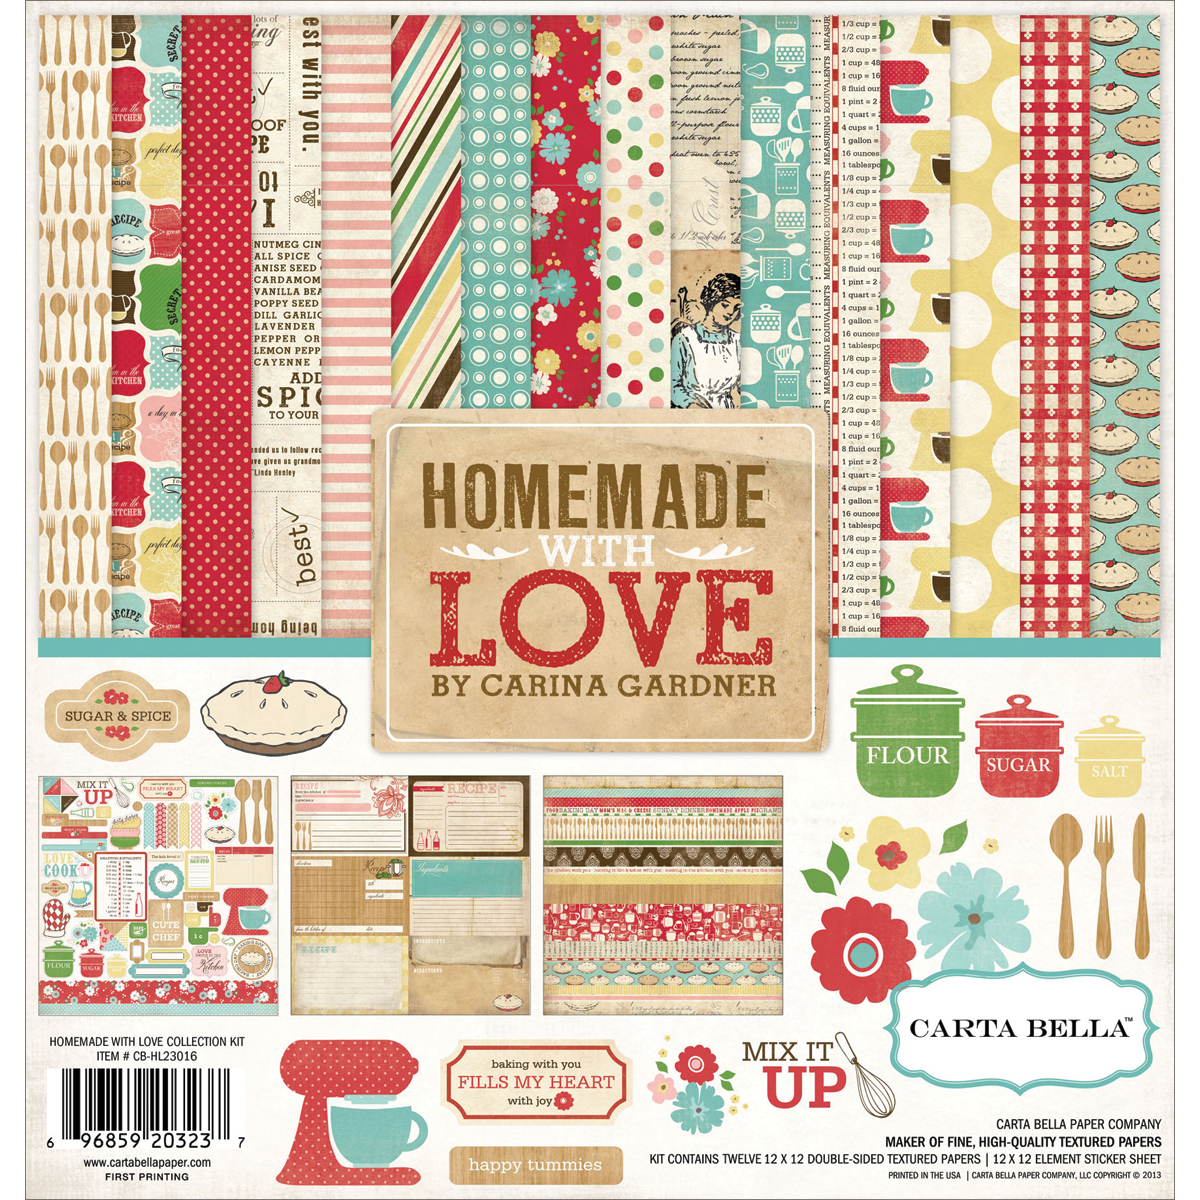 Carta Bella Collection Kit 12x12 - Homemade With Love